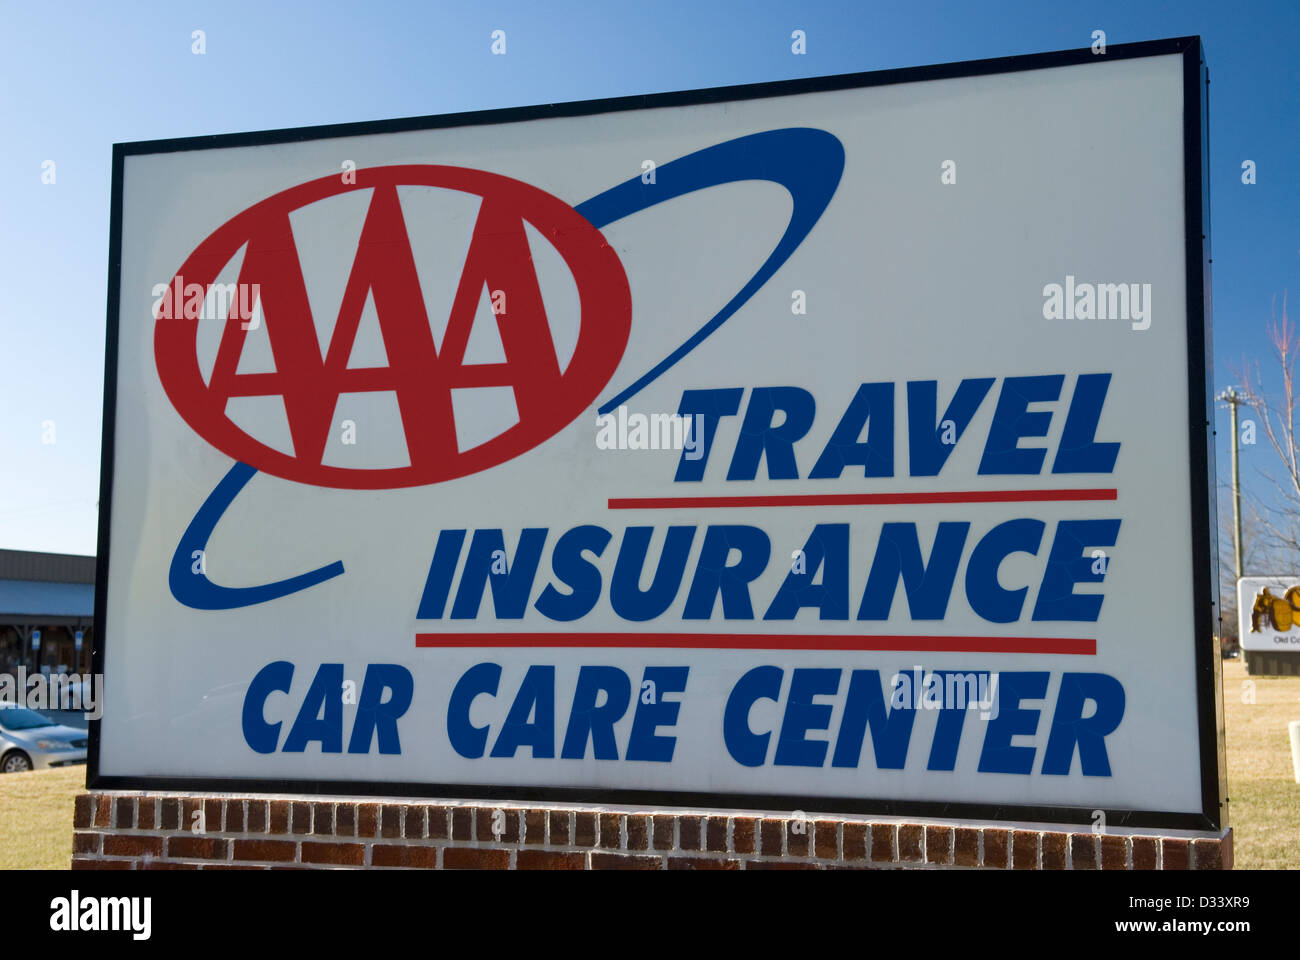 AAA Travel Insurance Car Care Center sign USA Stock Photo: 53561965